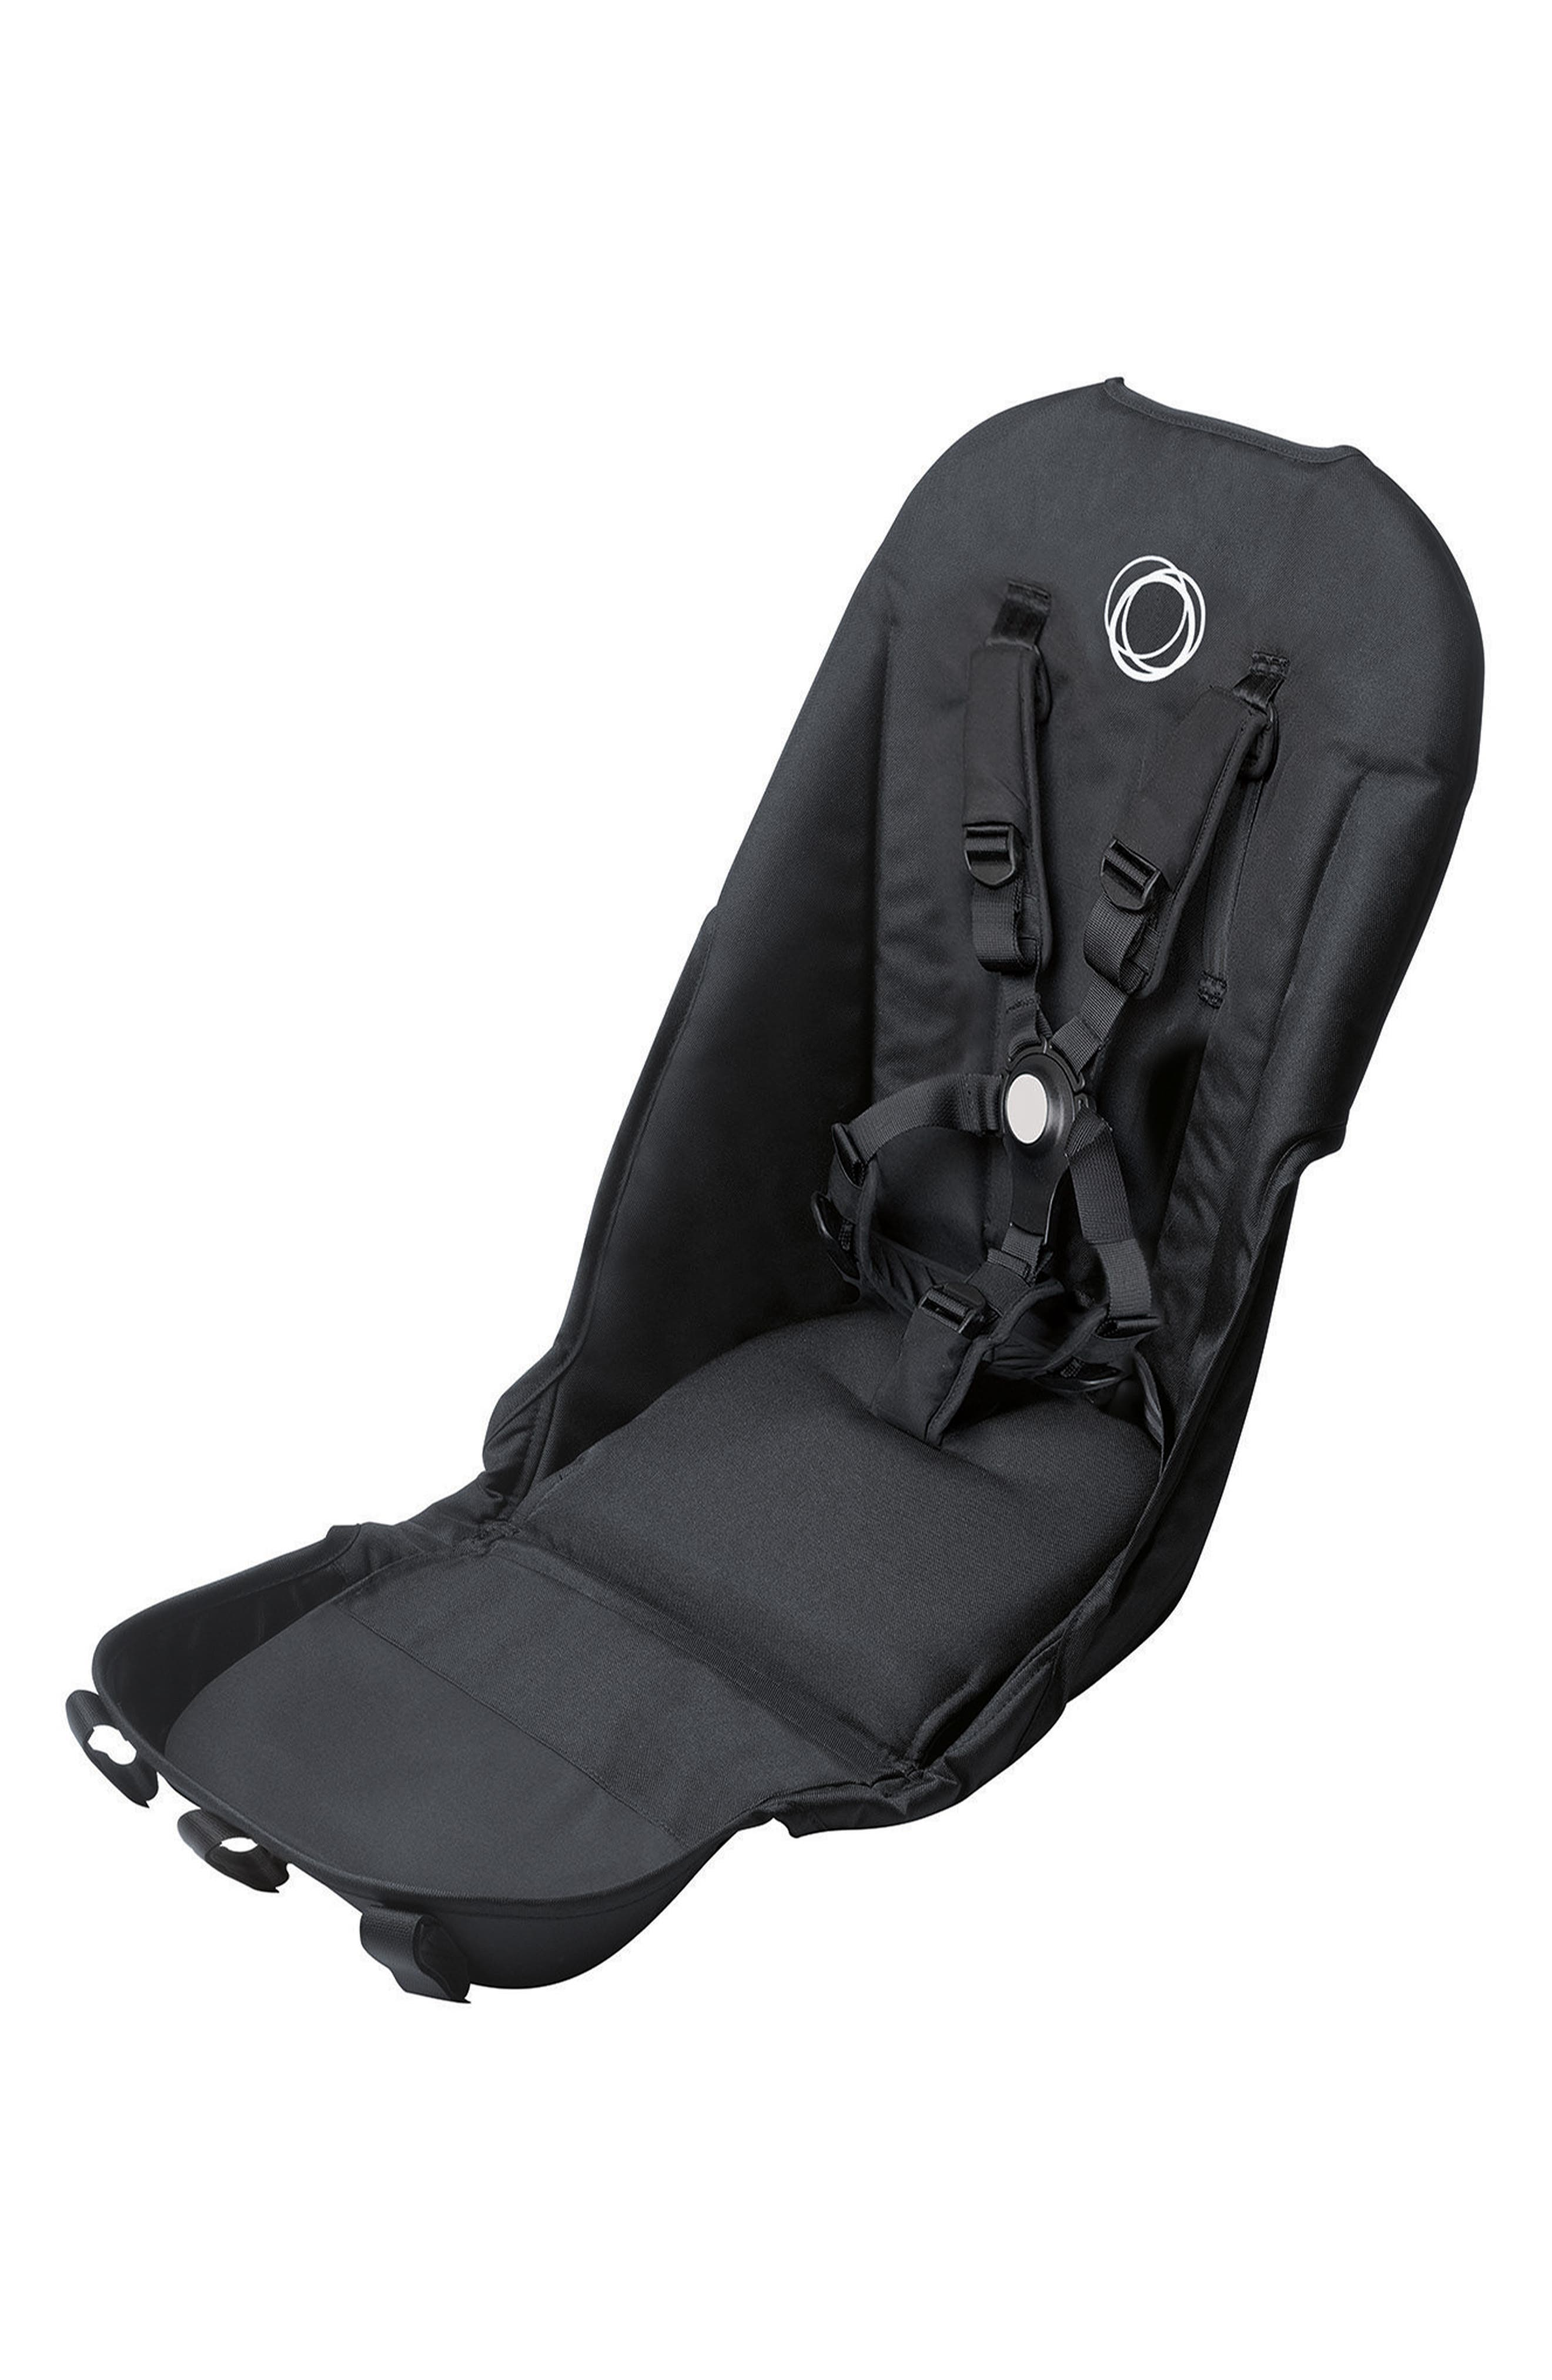 BUGABOO Seat Fabric for Donkey 2 Stroller, Main, color, BLACK